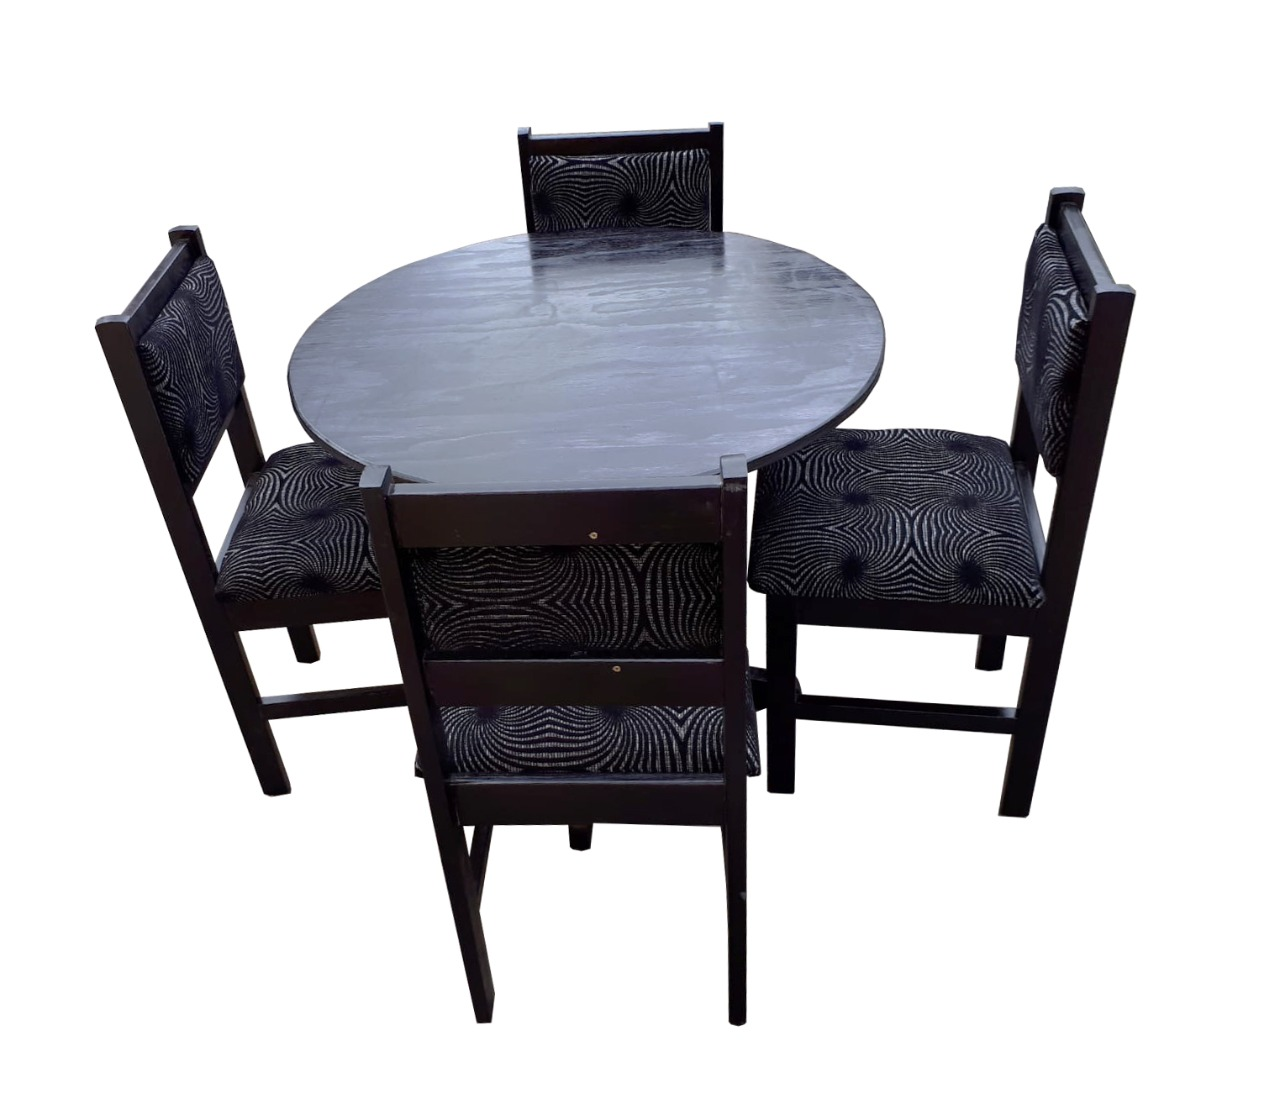 Black Wooden 4 Seater Dining Table Sets for